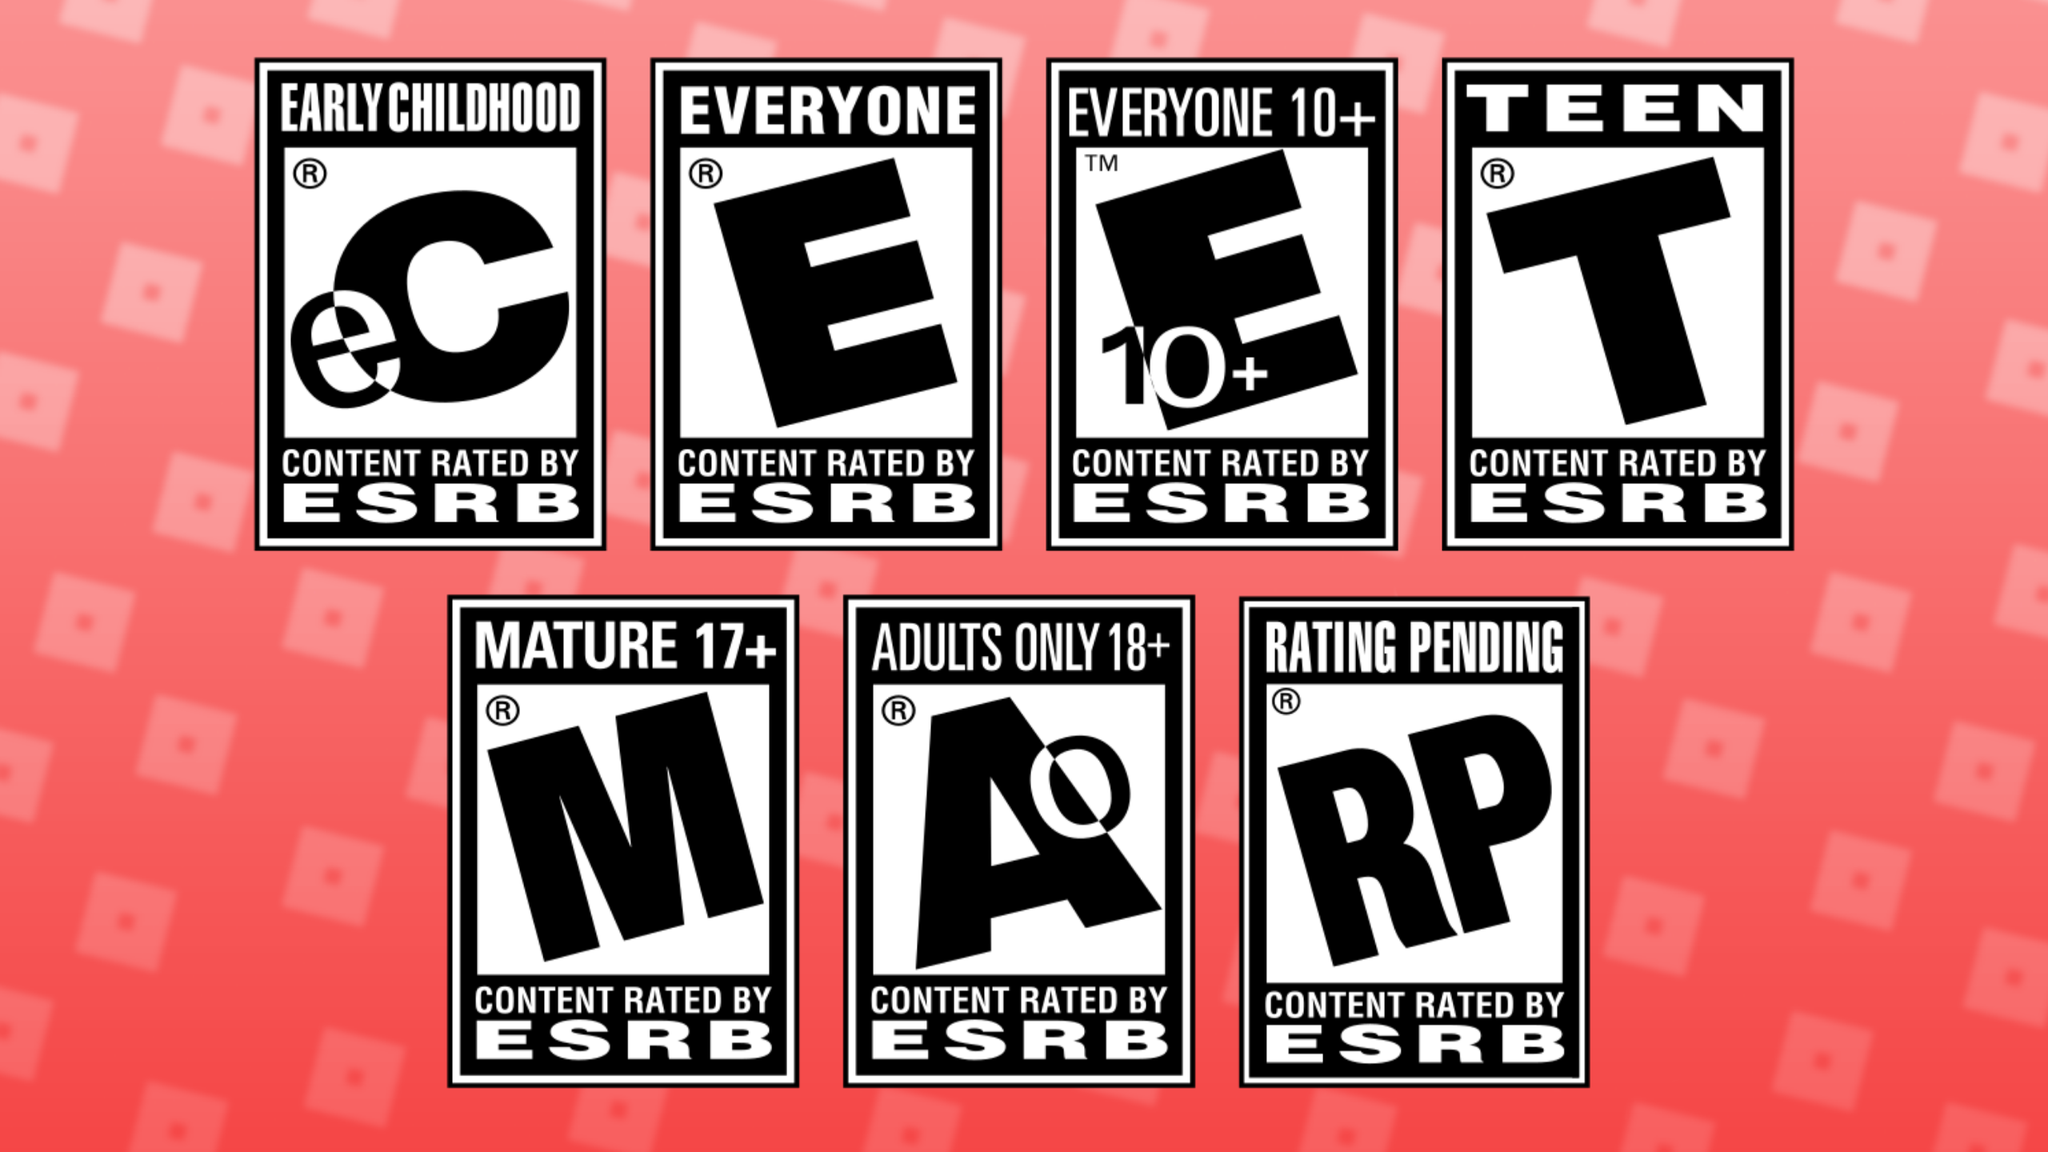 Mature 17 Content Rated By Esrb Roblox Rbxnews On Twitter We Know We Said That We Weren T Tweeting Anything Else On Rdc2020 But We Though We D Inform You About One More Thing Age Ratings As Far As We